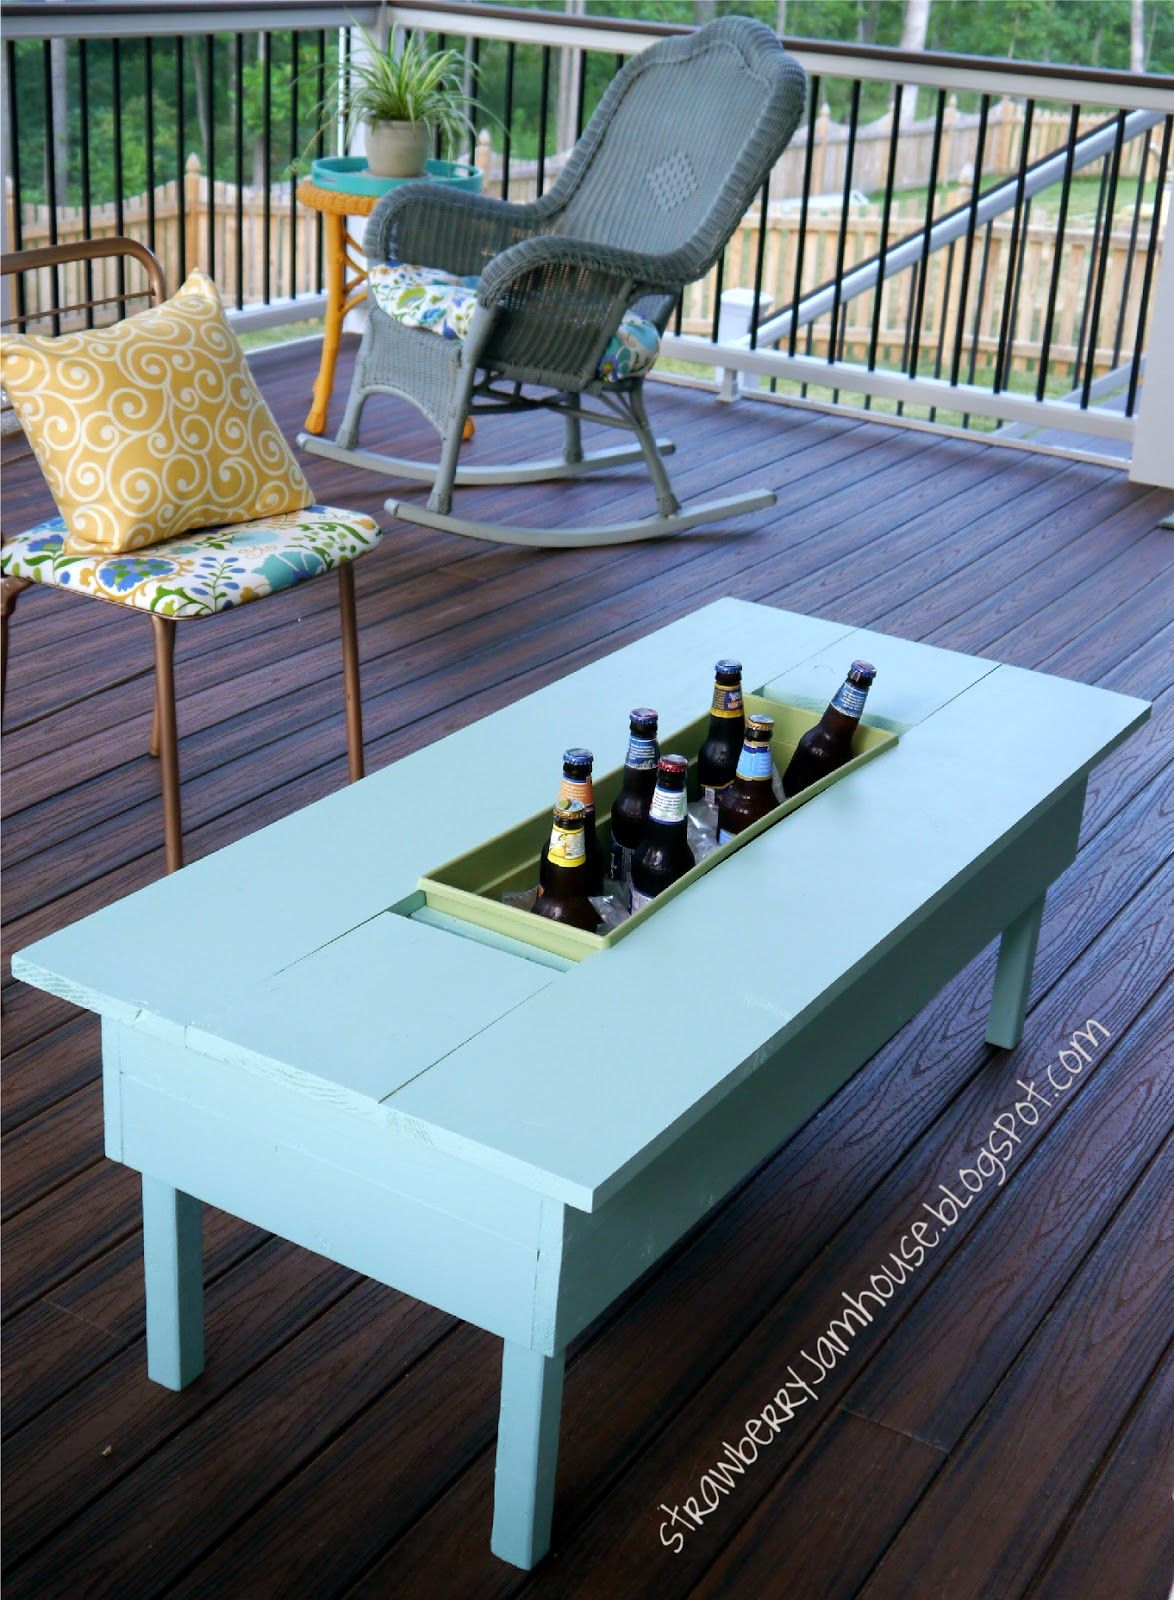 Small coffee table with ice cooler - How To Build Or Upgrade An Outdoor Table With Built-in Cooler